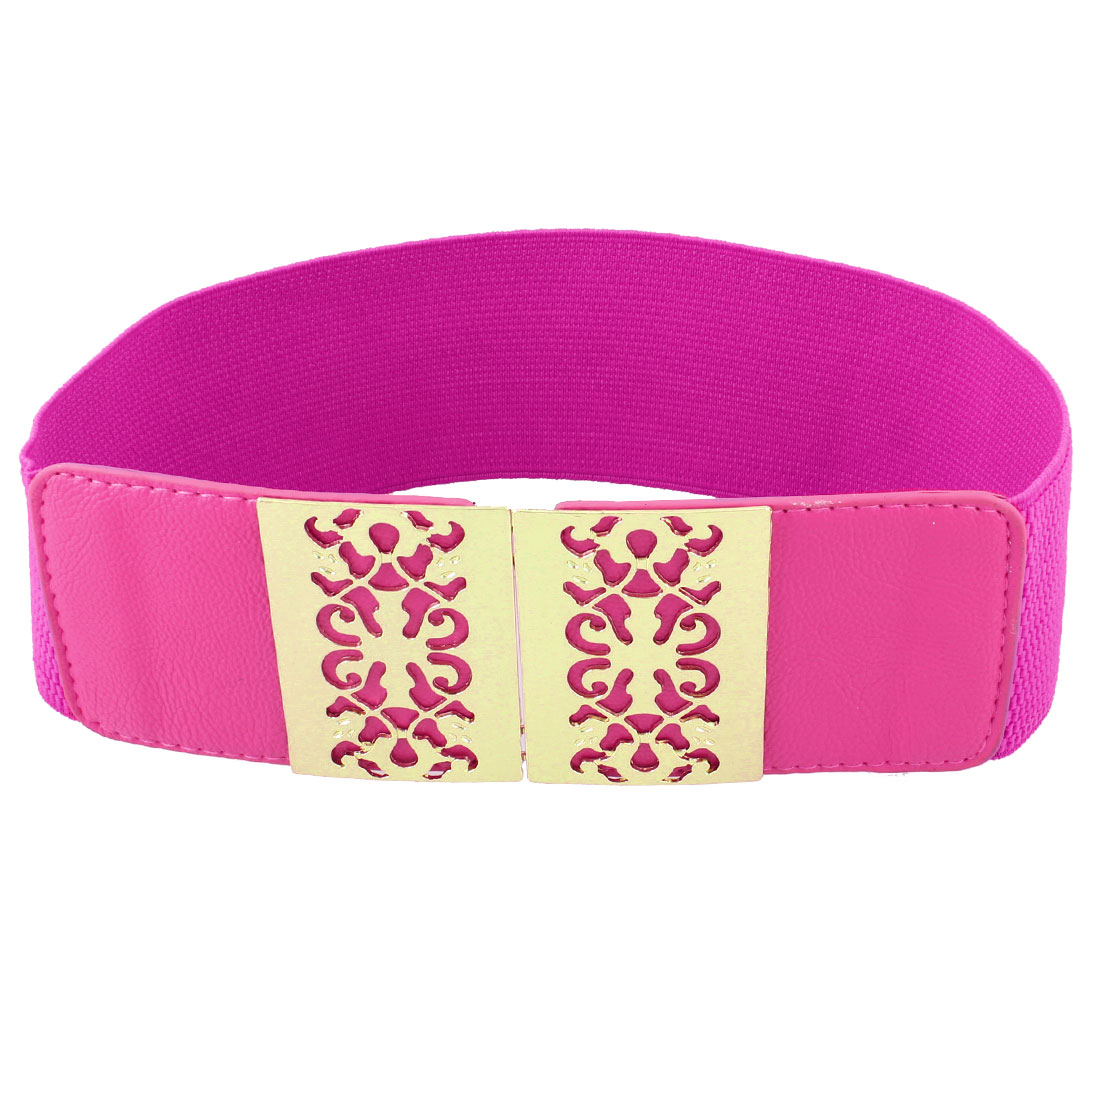 Women Hollow Out Floral Adorning Interlocking Buckle Stretchy Belt Fuchsia